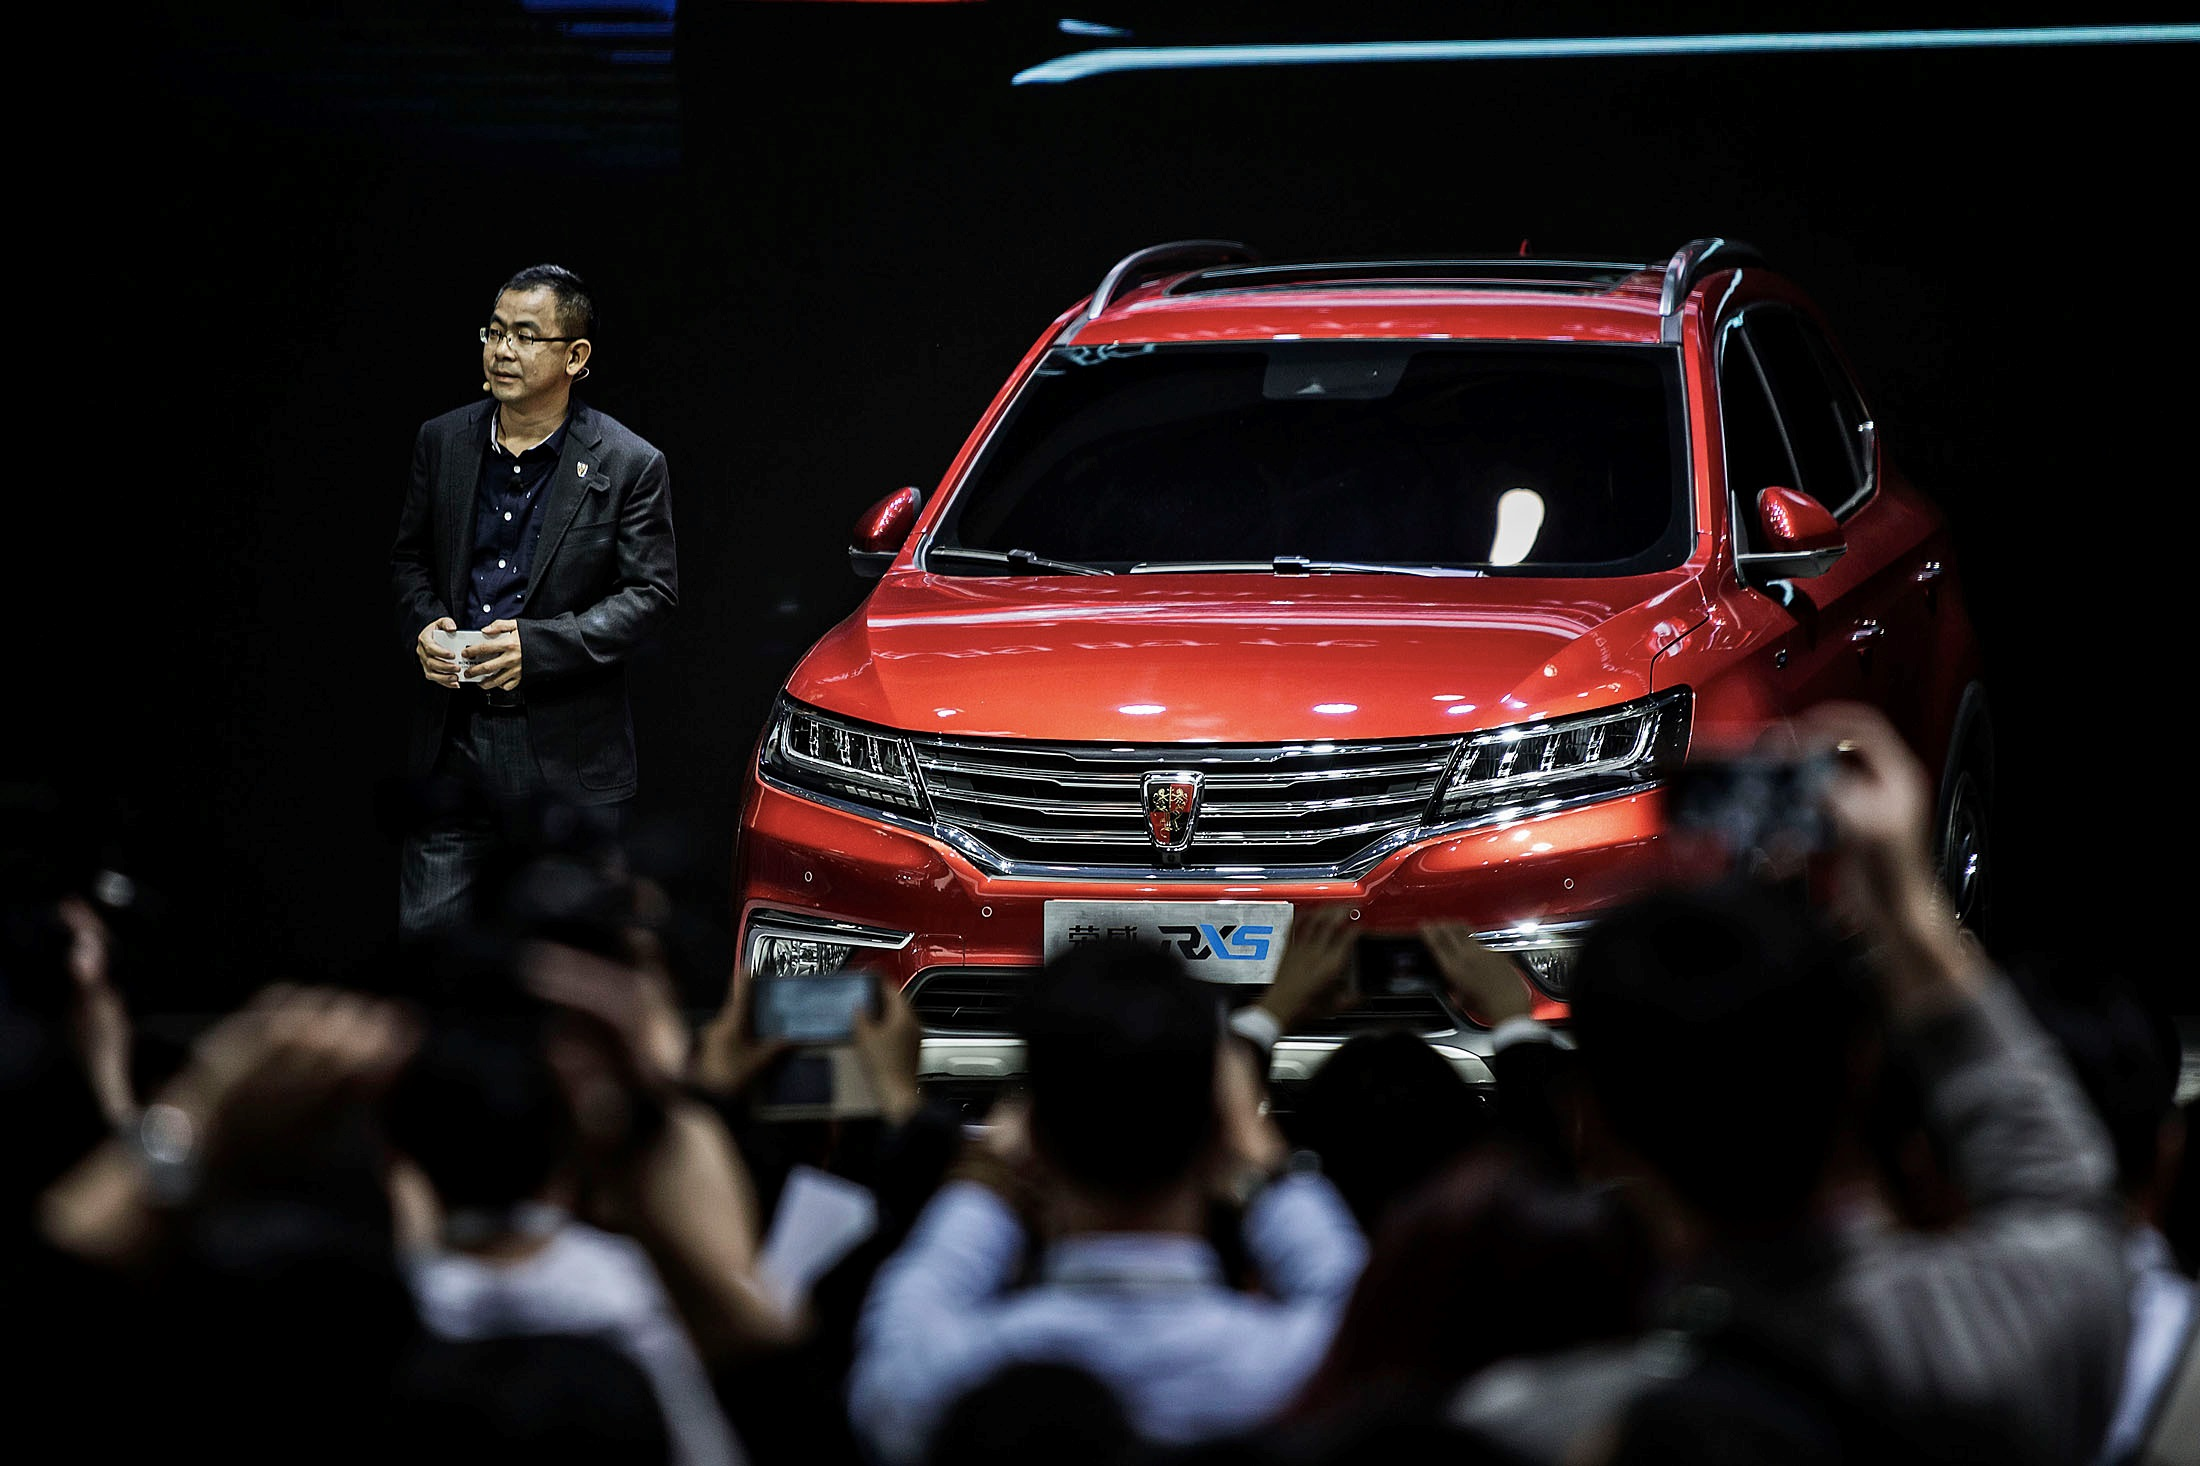 SAIC Motors presents its new Roewe ERX5, a fuel-efficient, connected SUV that aims to be more affordable than its foreign competitors.